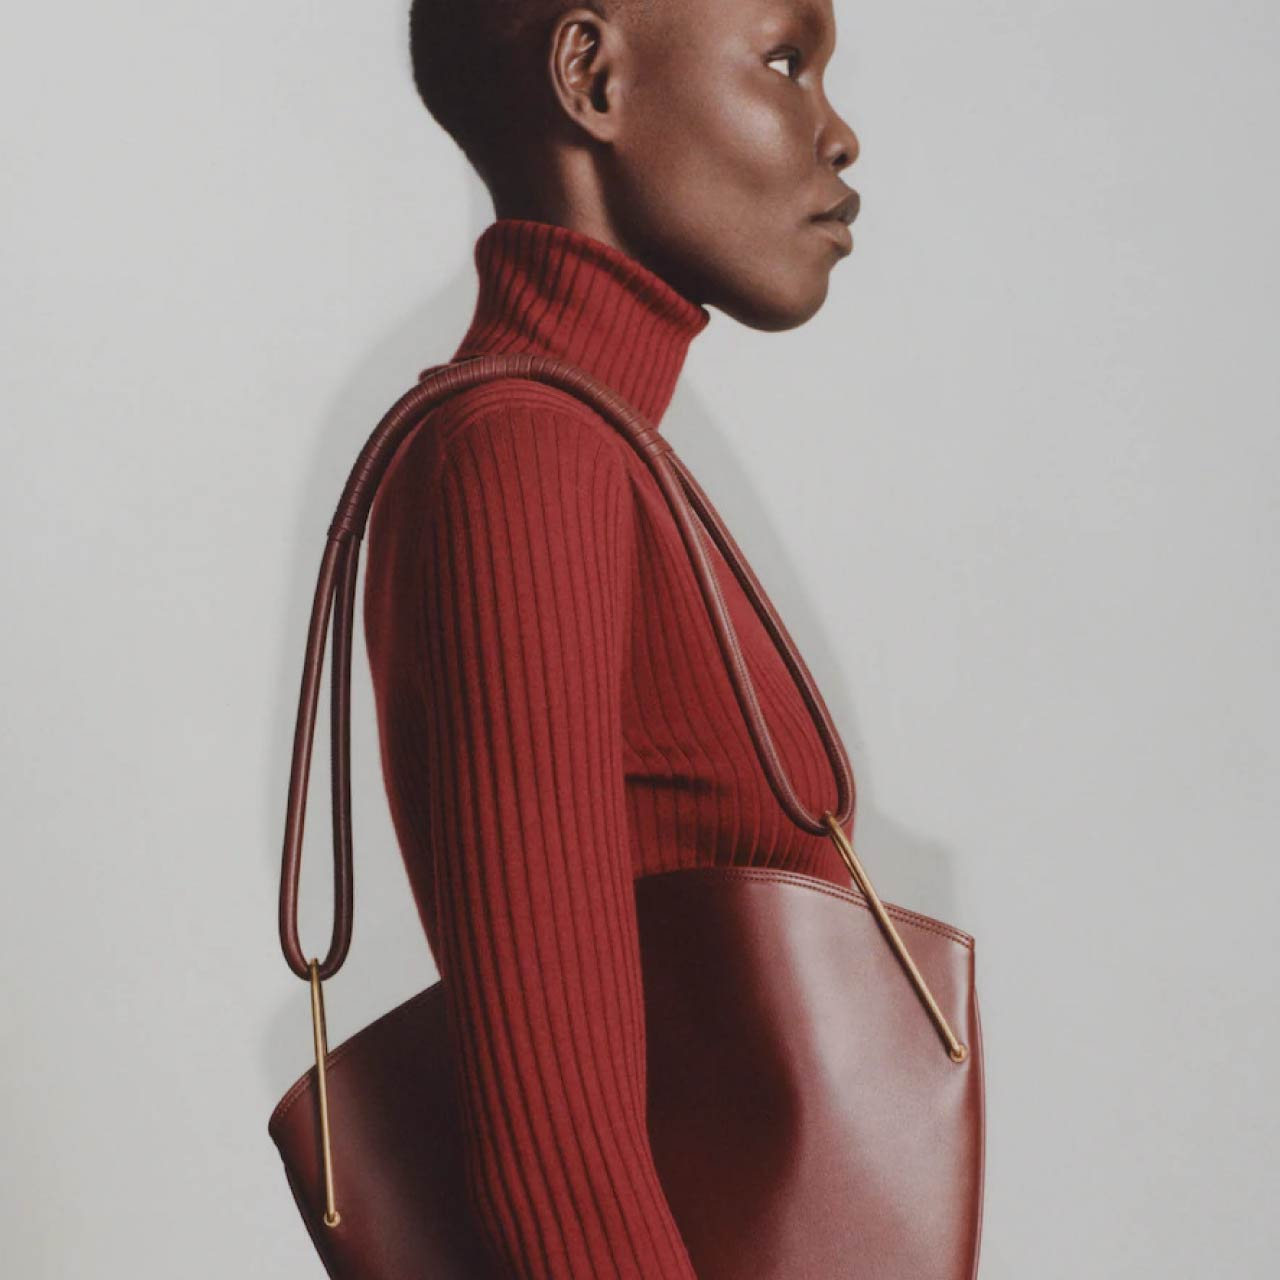 Slight Dropped Shoulders at The Row | The Cutting Class. Pre Fall 2020 leather handbag and dark red knit turtleneck.